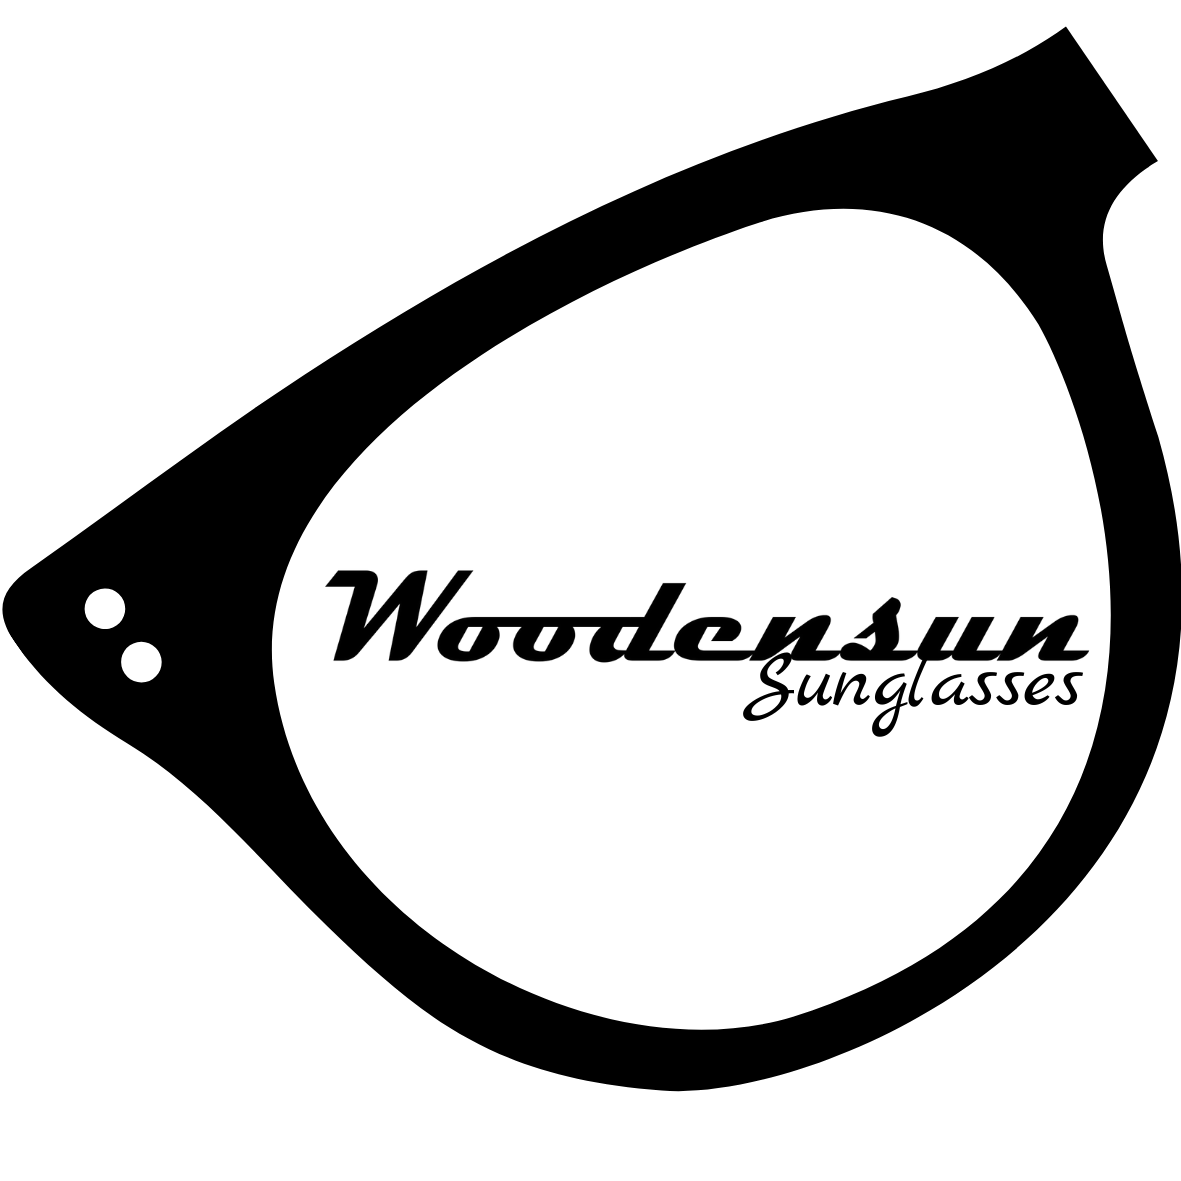 Woodensun Sunglasses